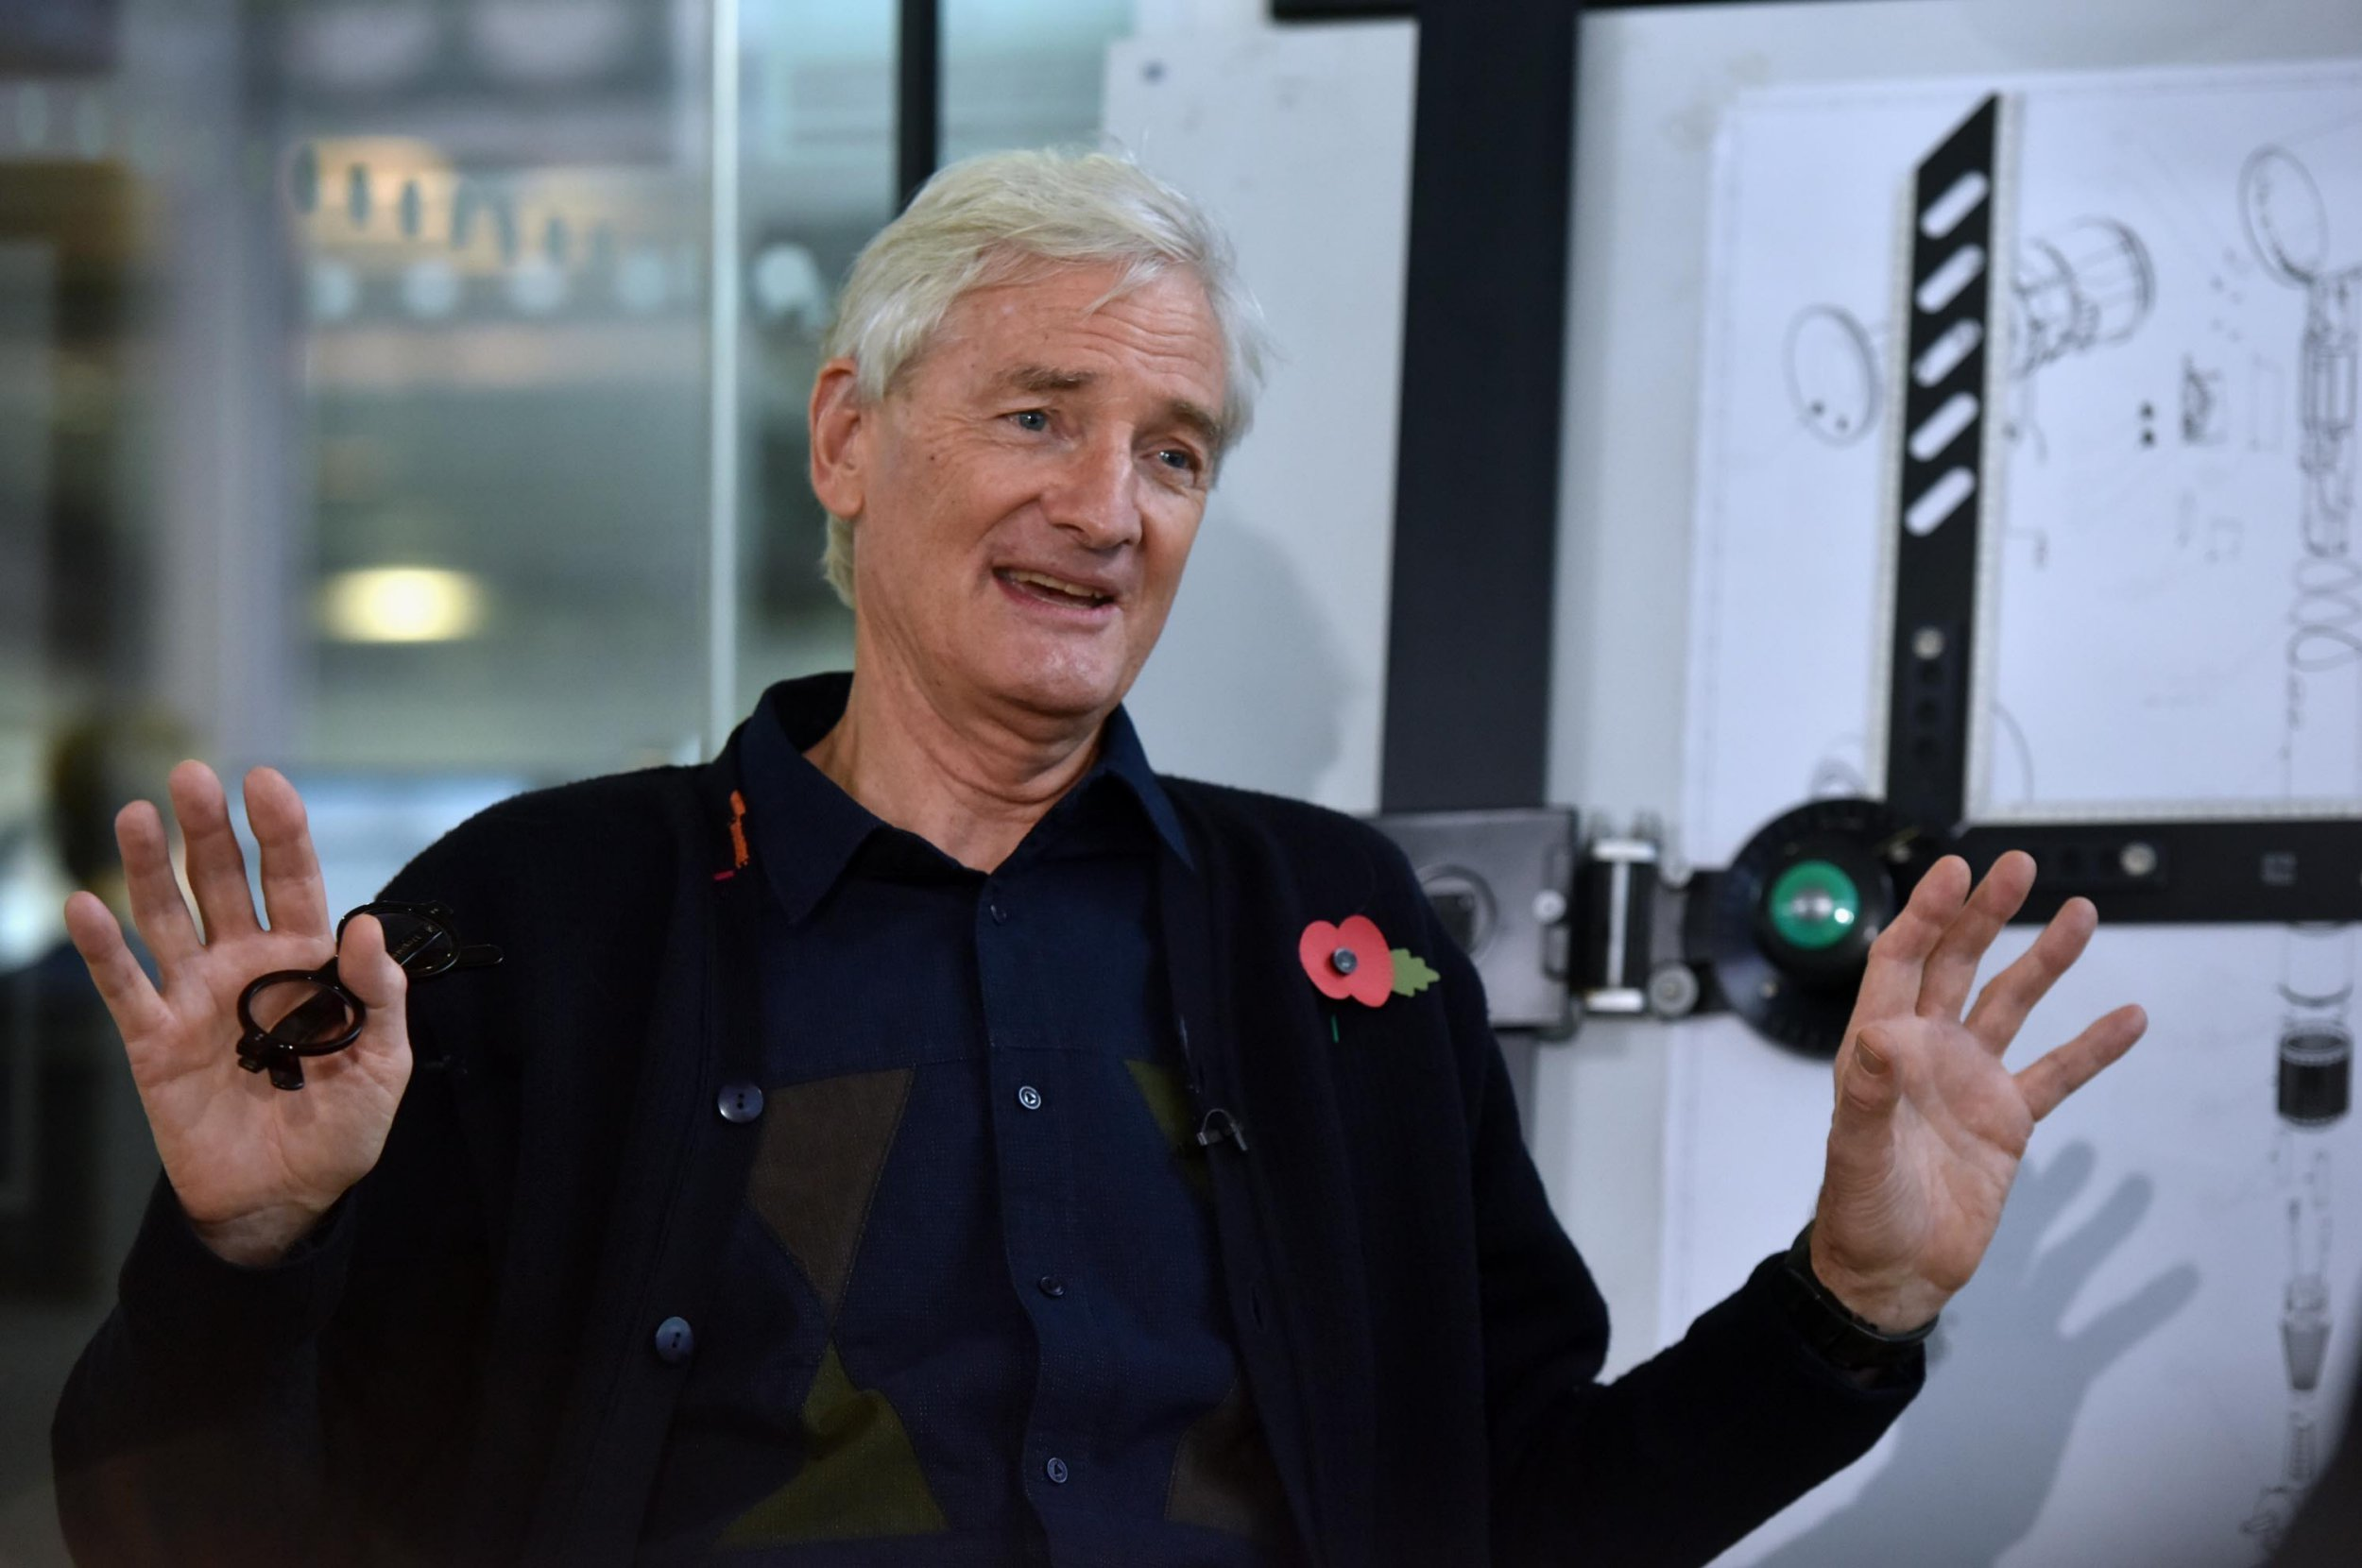 James Dyson wants to make it easier to 'hire and fire' people